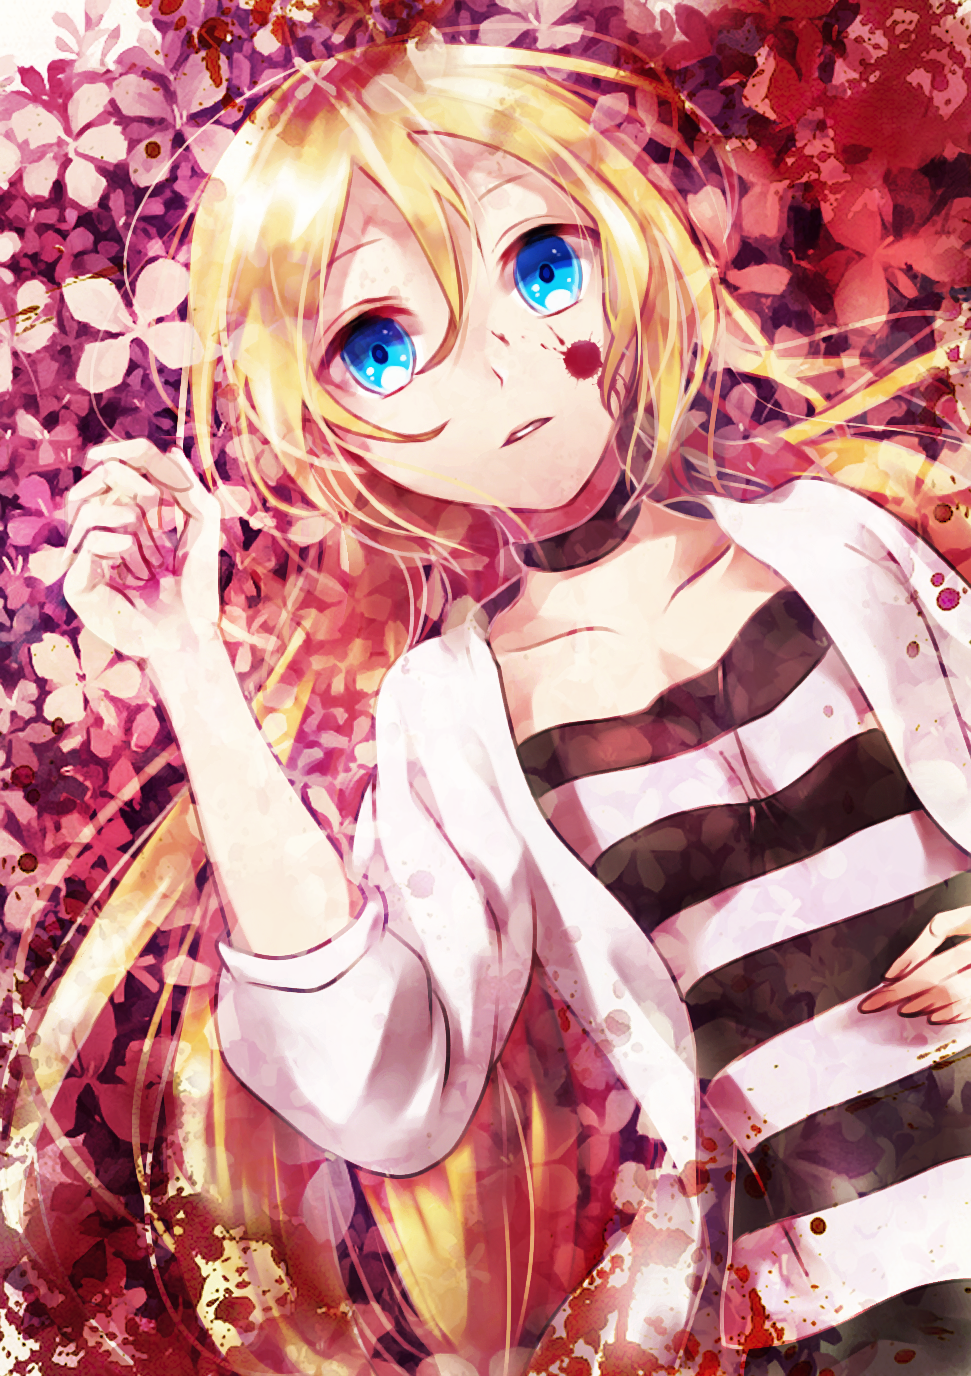 1girl agatsu_yudume blonde_hair blood blood_on_face bloody_clothes blue choker collarbone eyes from_above hair_between_eyes highres jacket long_hair looking_at_viewer lying on_back open_clothes open_jacket parted_lips rachel_gardner satsuriku_no_tenshi shirt solo striped striped_shirt upper_body very_long_hair white_jacket